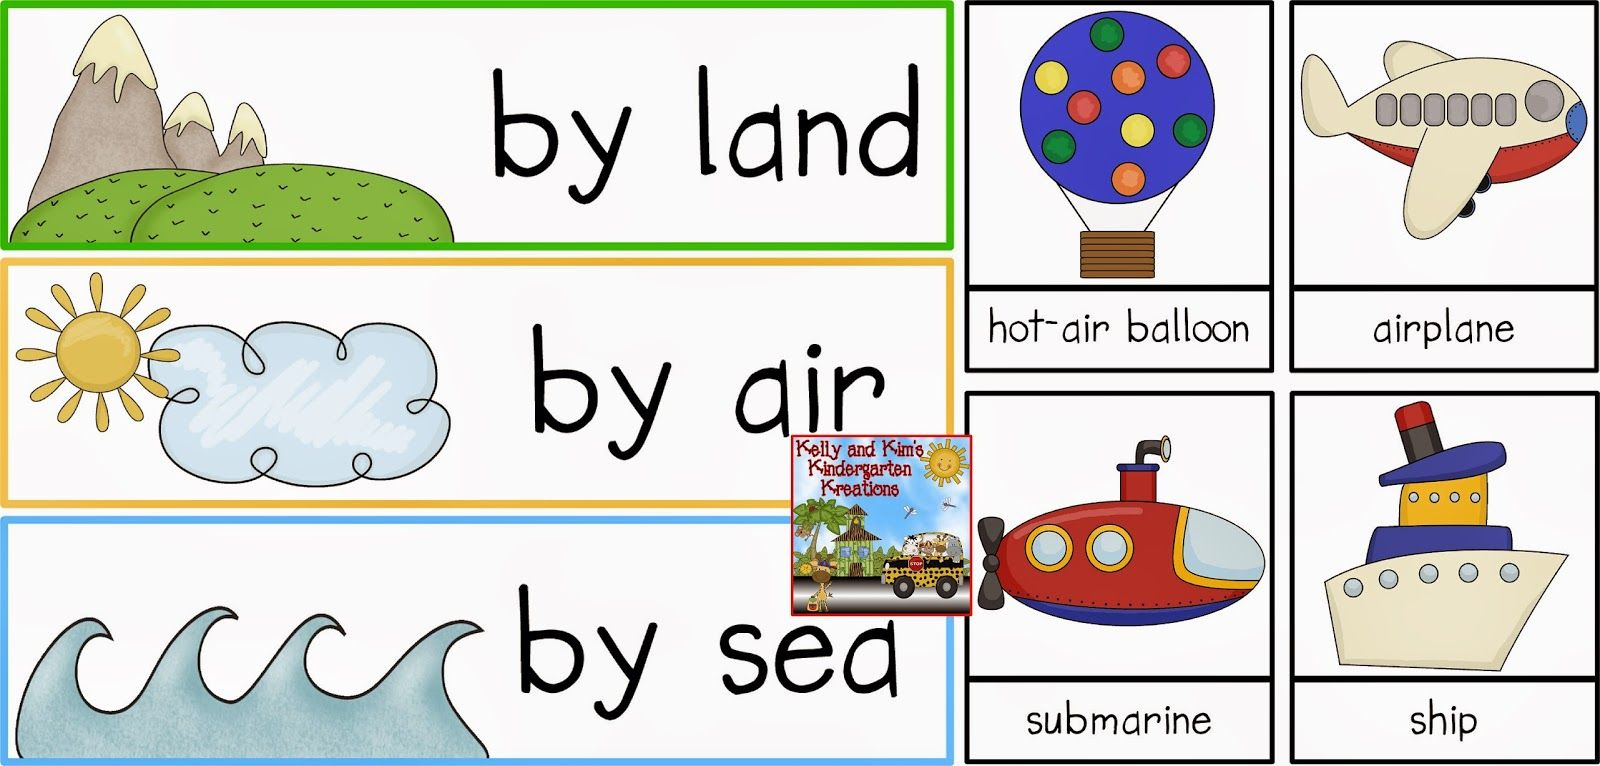 Land, Air, or Sea? Come Along and Sort With Me! A pack of